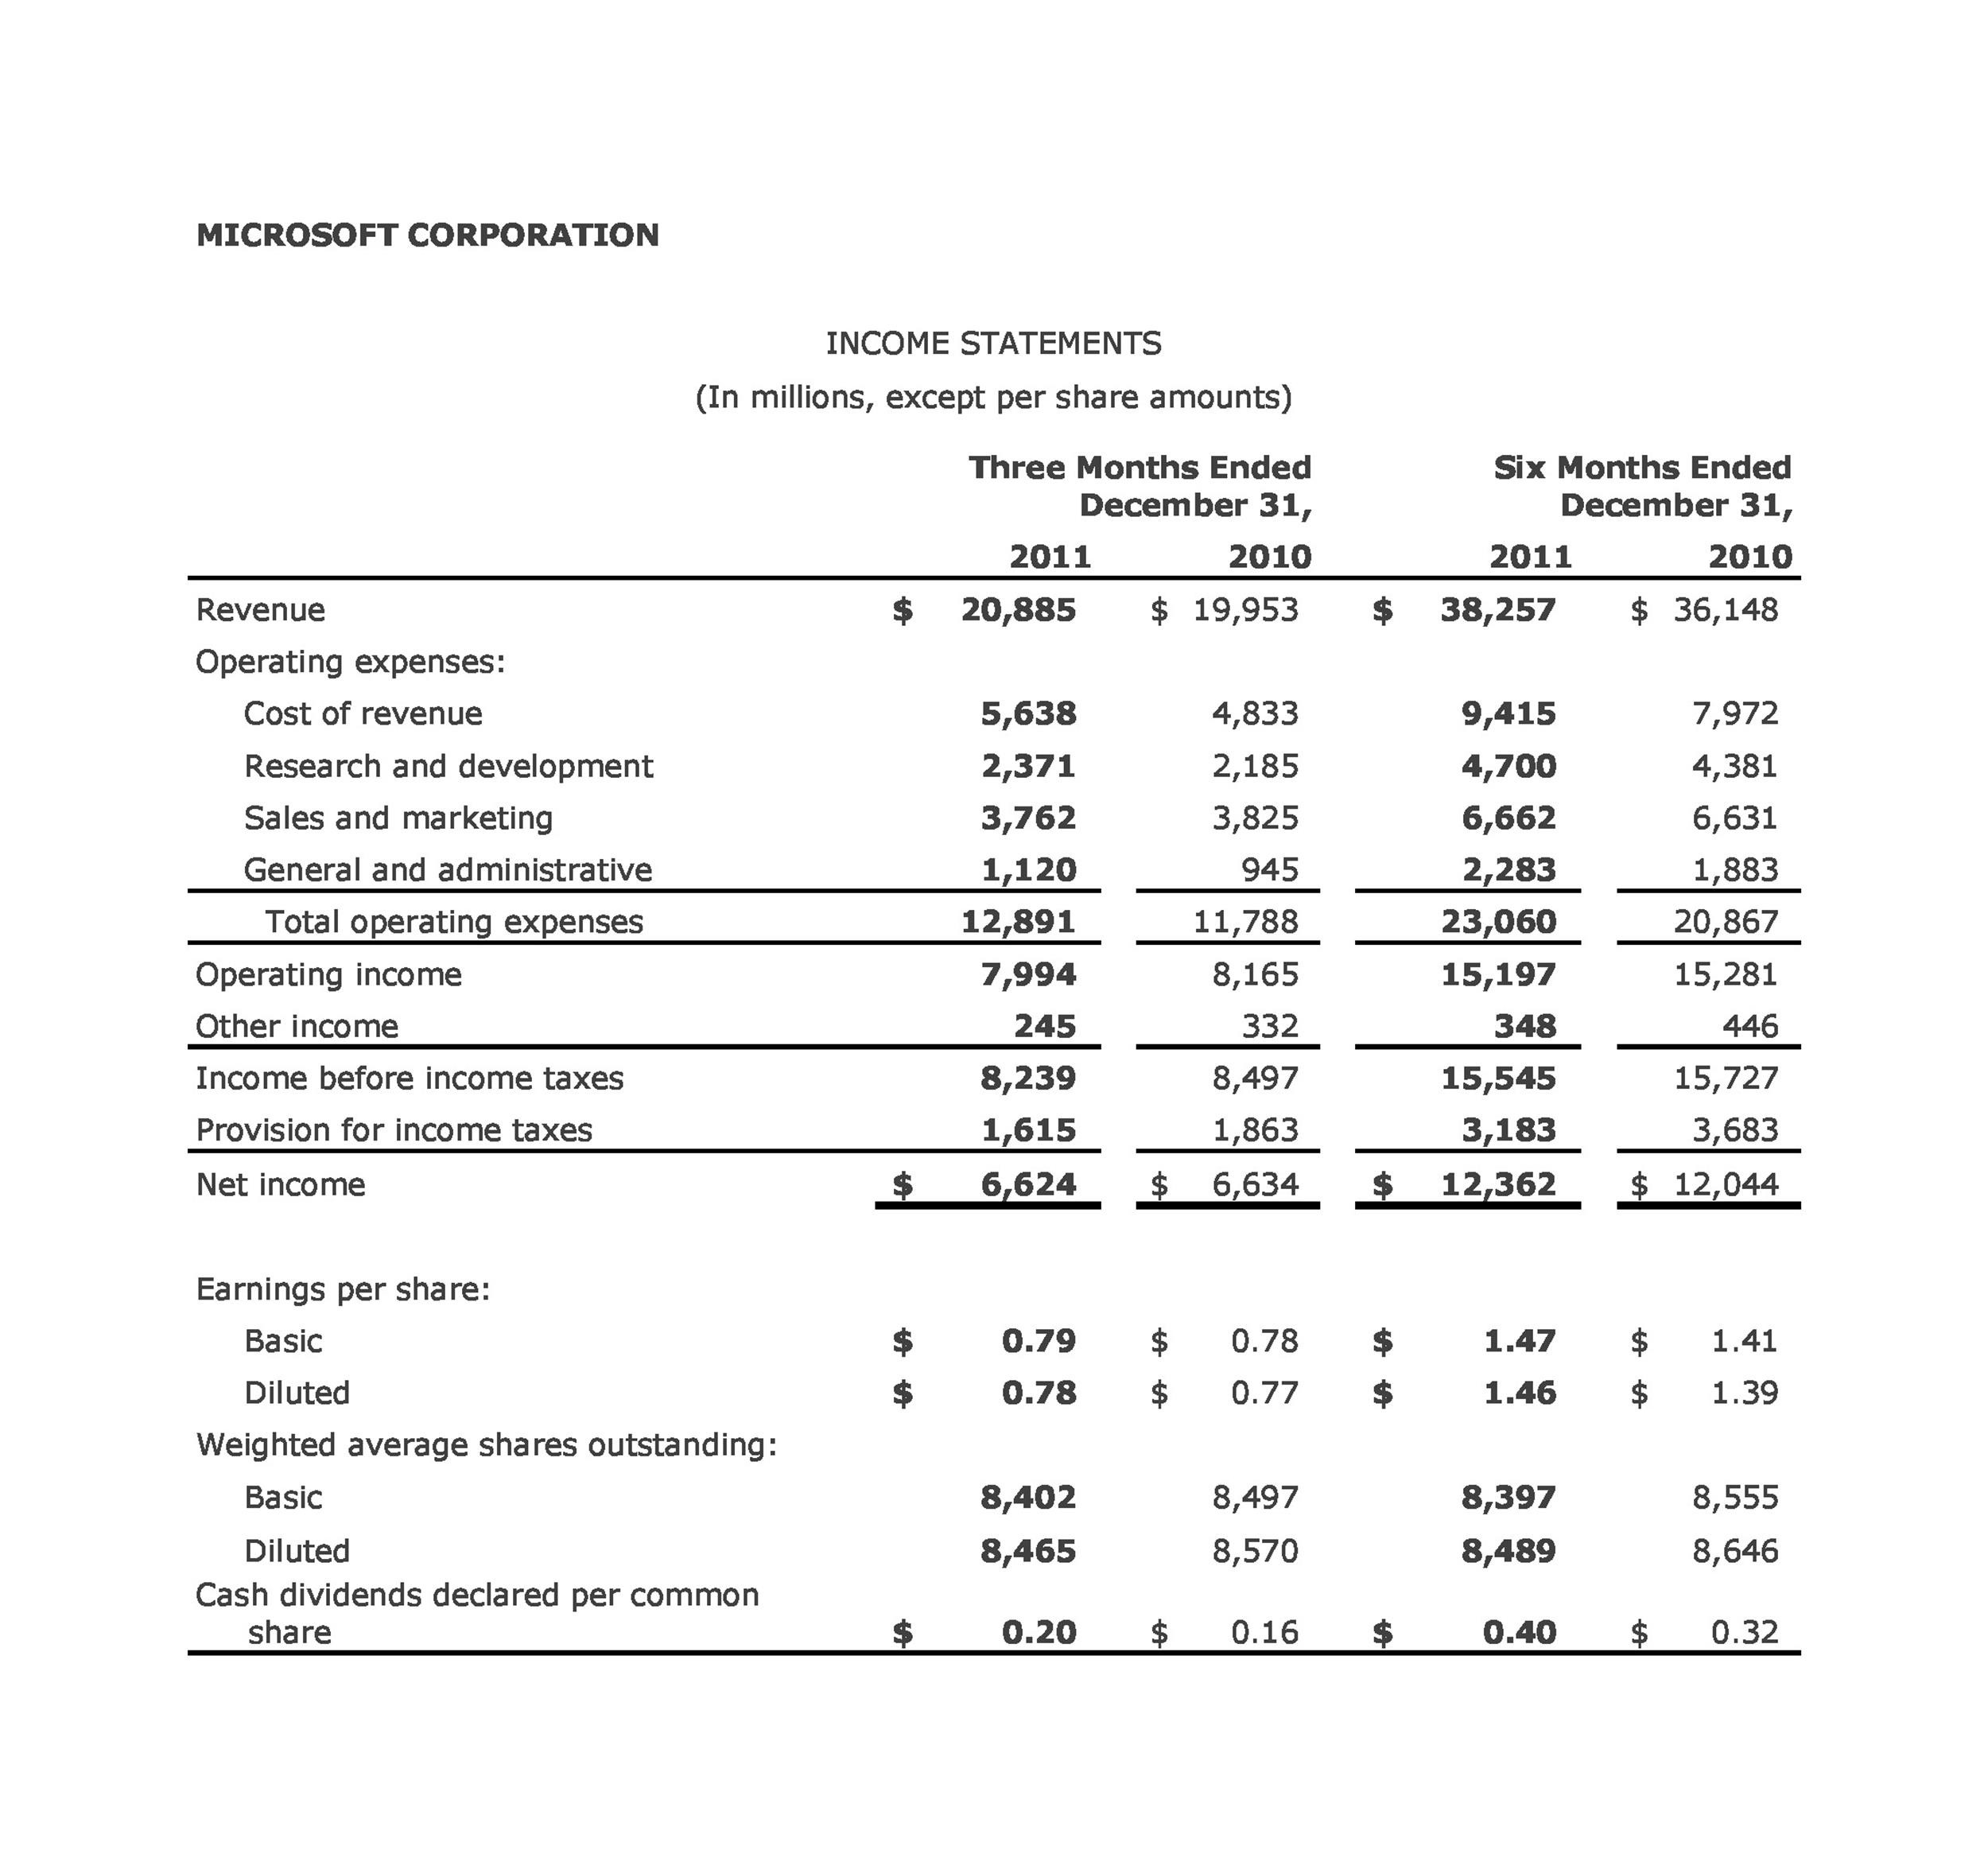 41 FREE Income Statement Templates  Examples - Template Lab